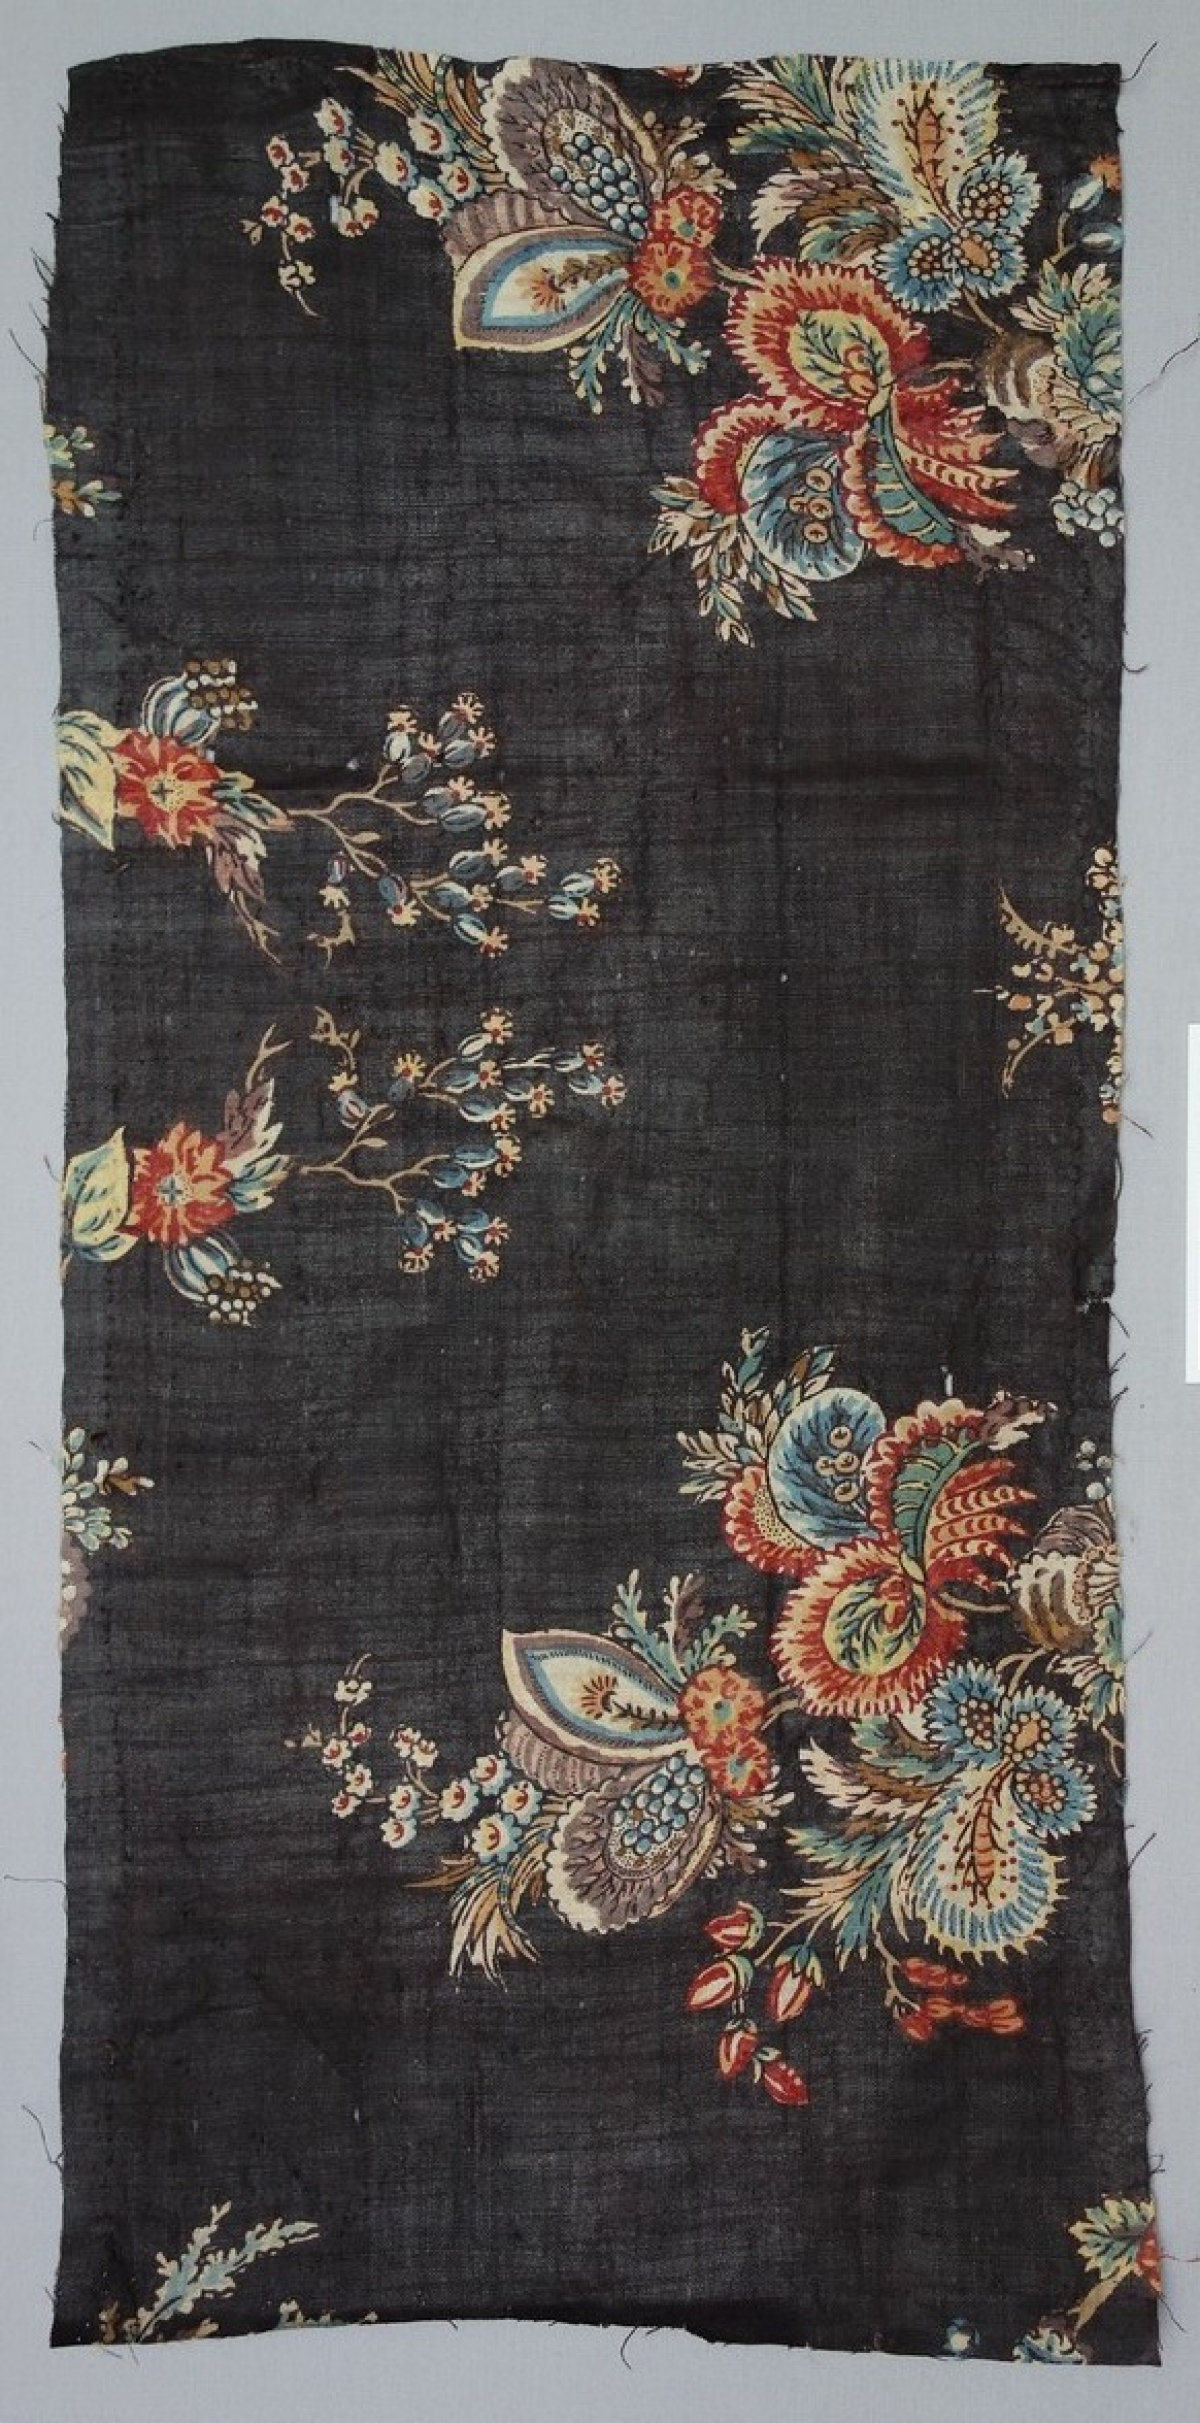 Sample of a French copy of an Indian chintz, c. 1900.